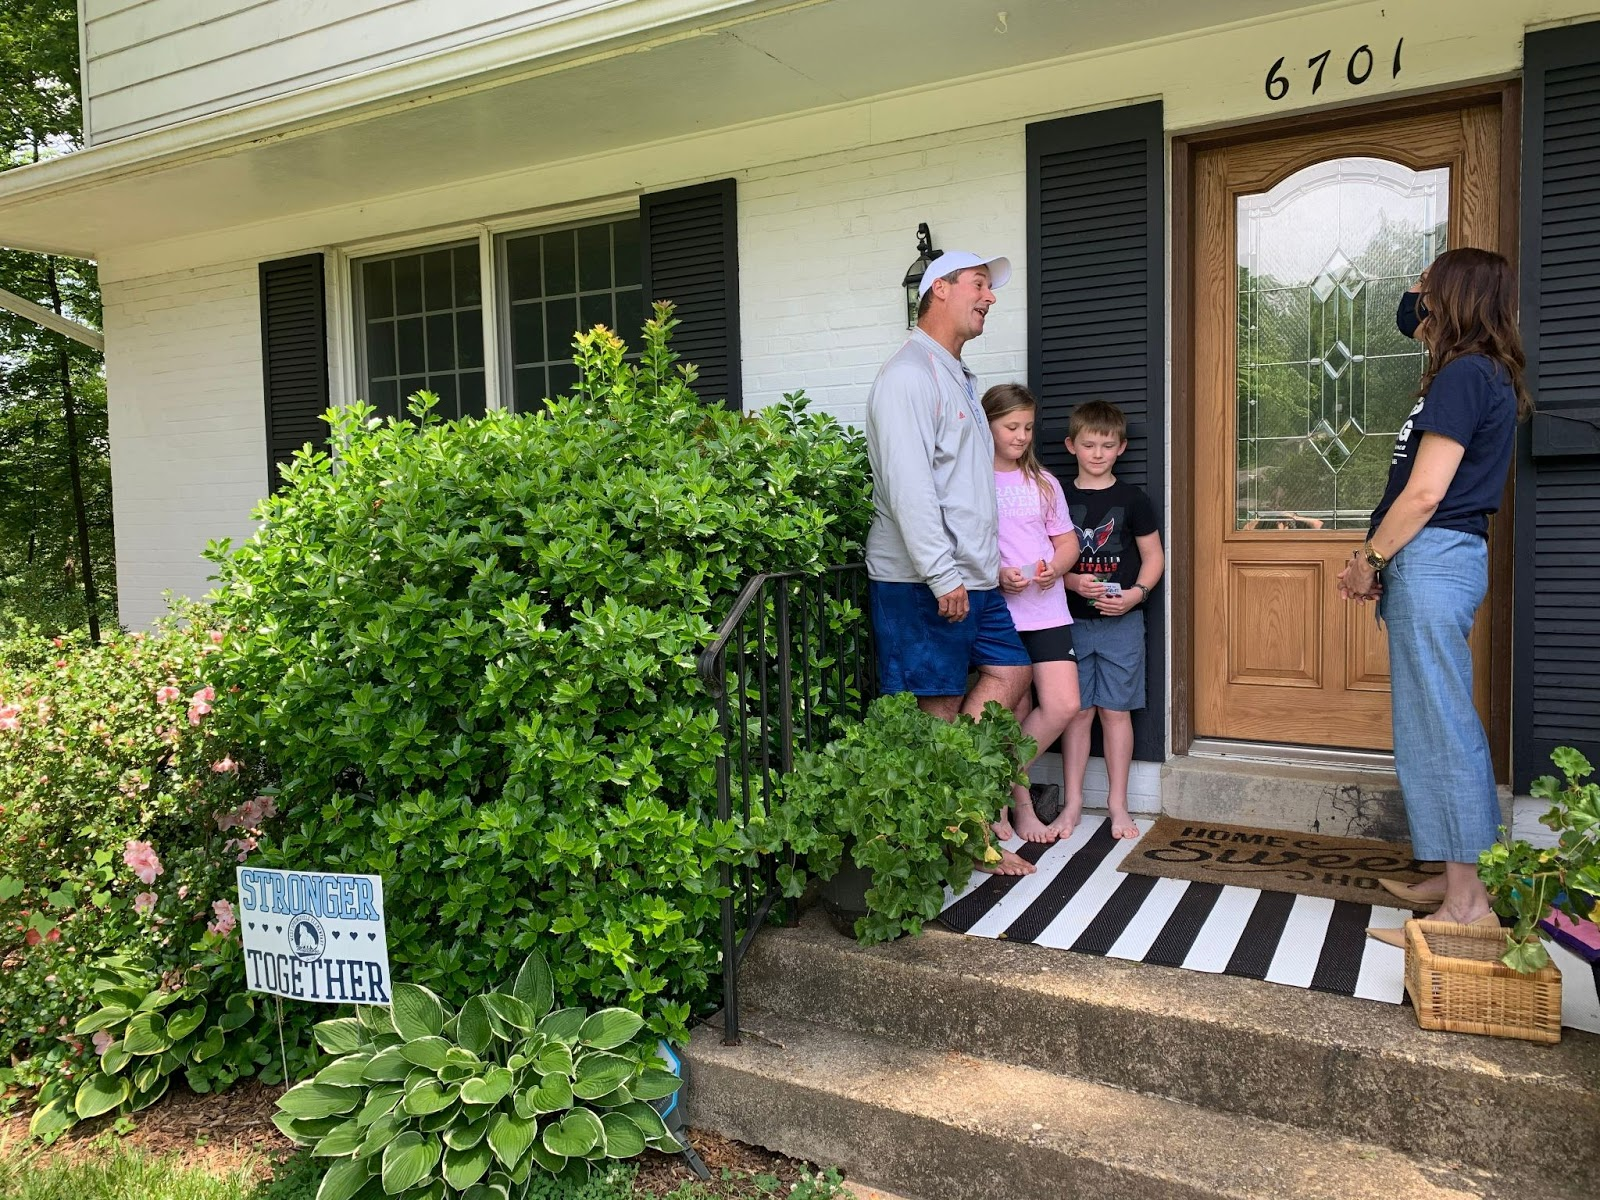 Dr. Sheers visits the McDonald family on their front porch.